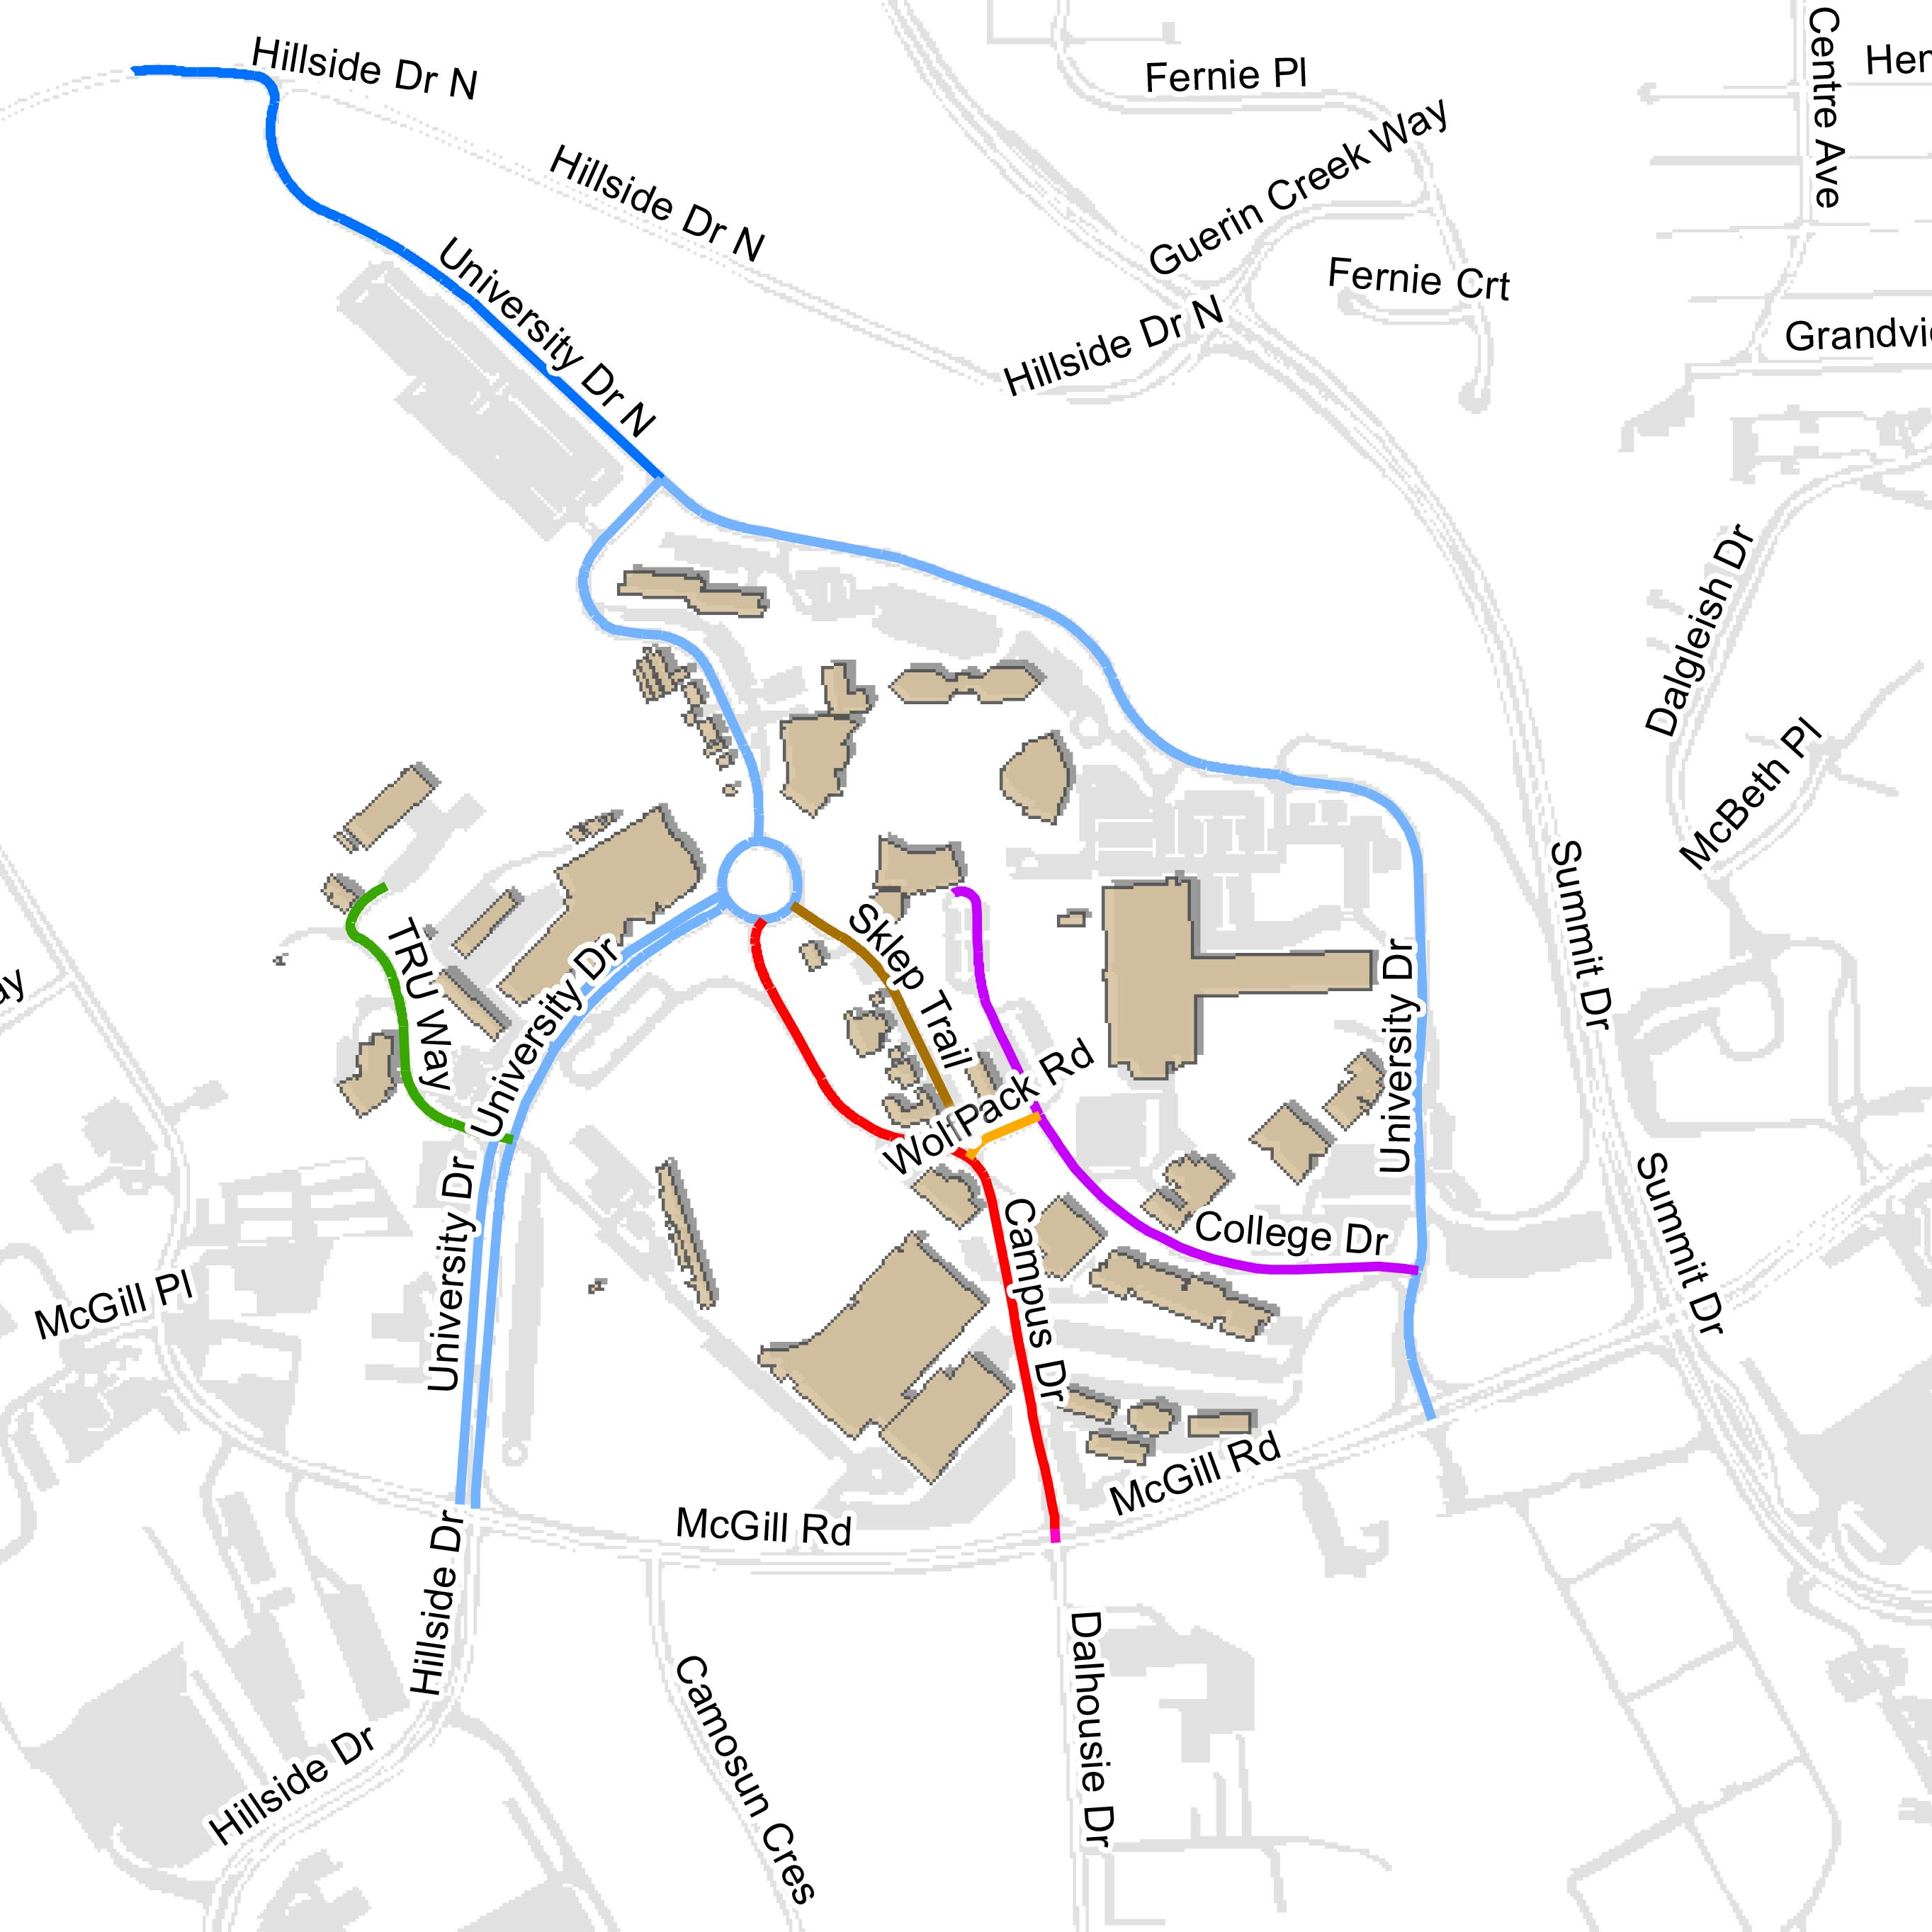 Campus map with new names Sept 22 2016